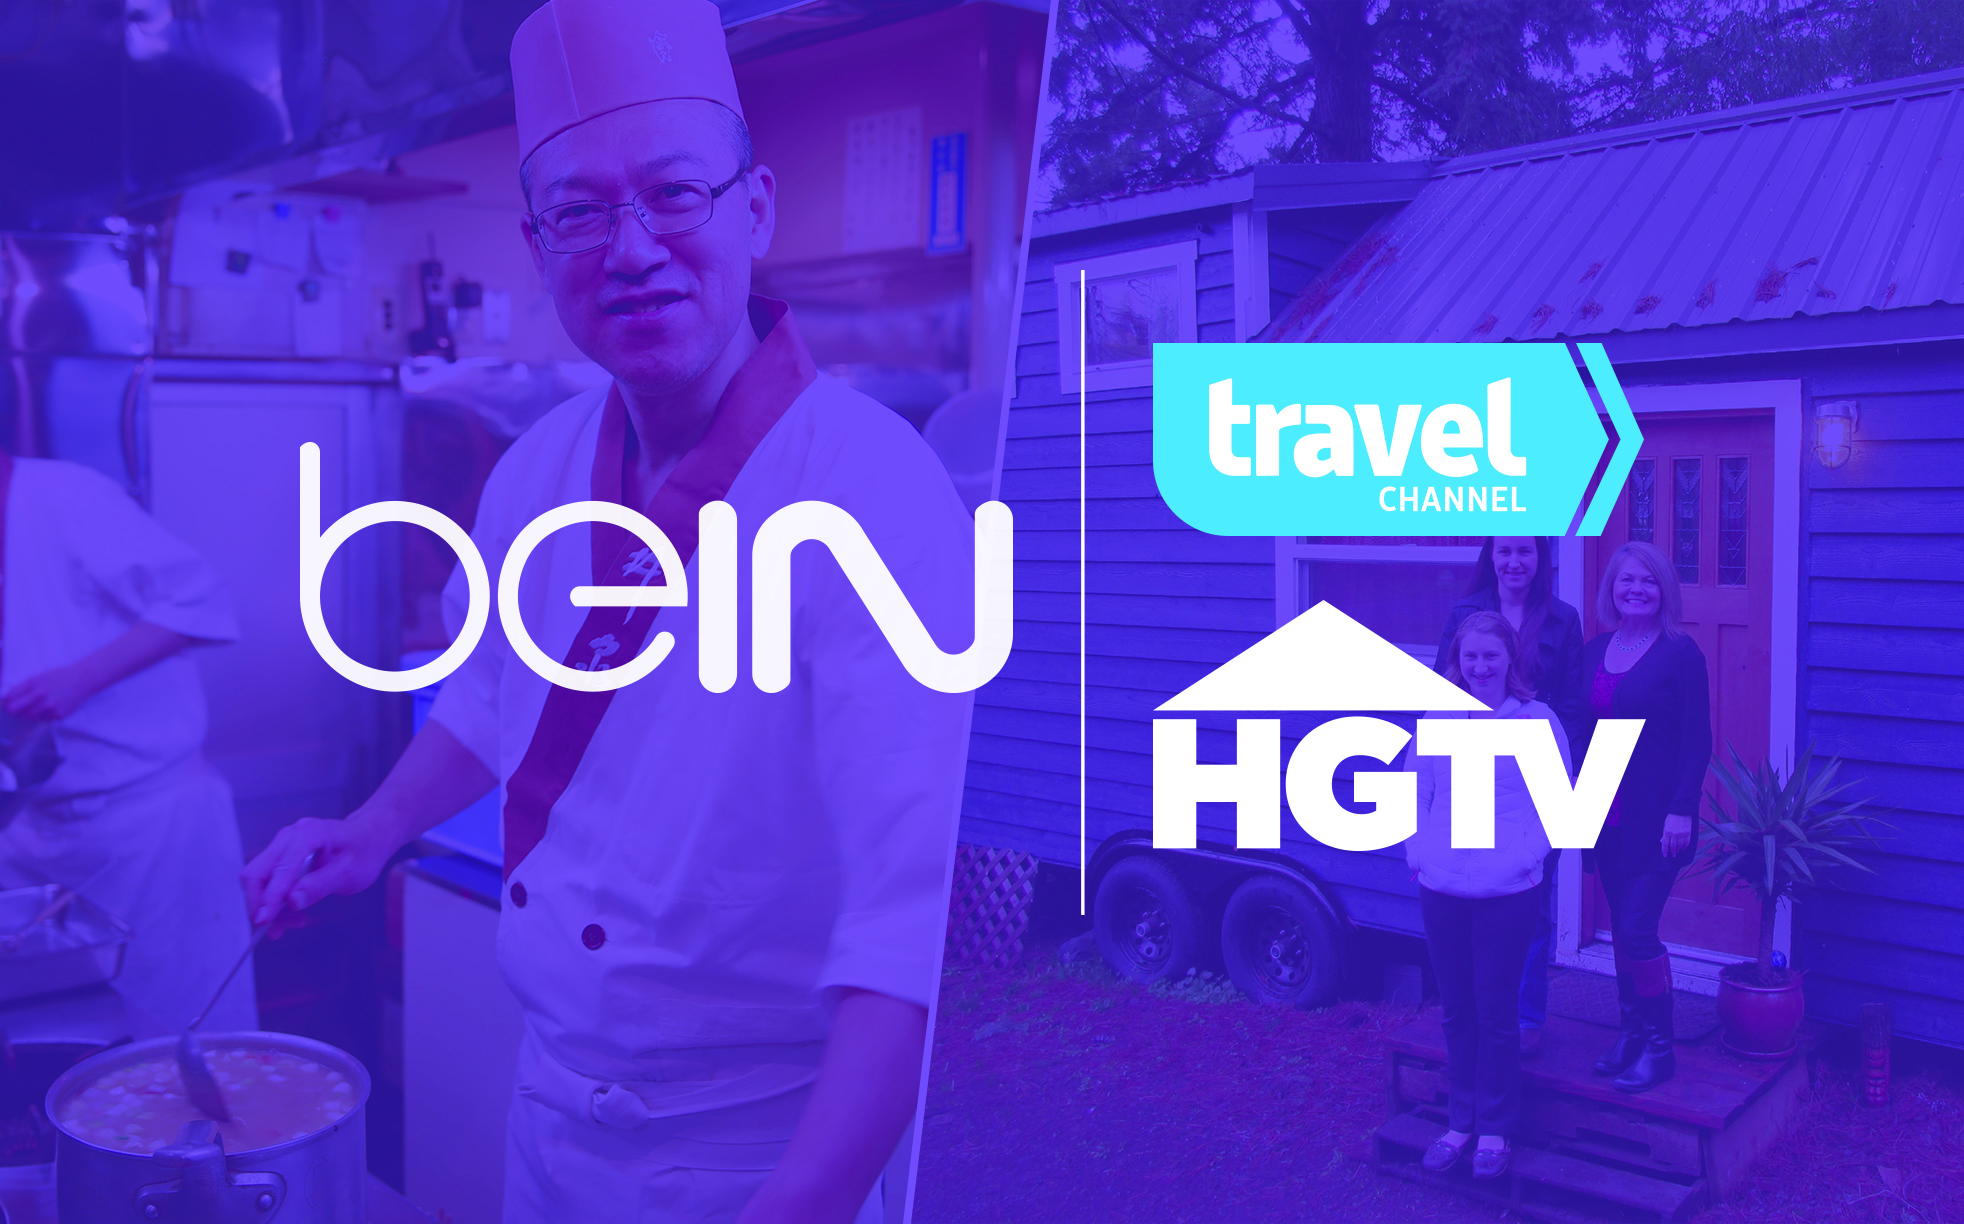 home u0026 garden tv hgtv will launch for the first time in the region and travel channel expand regional - Home And Garden Channel